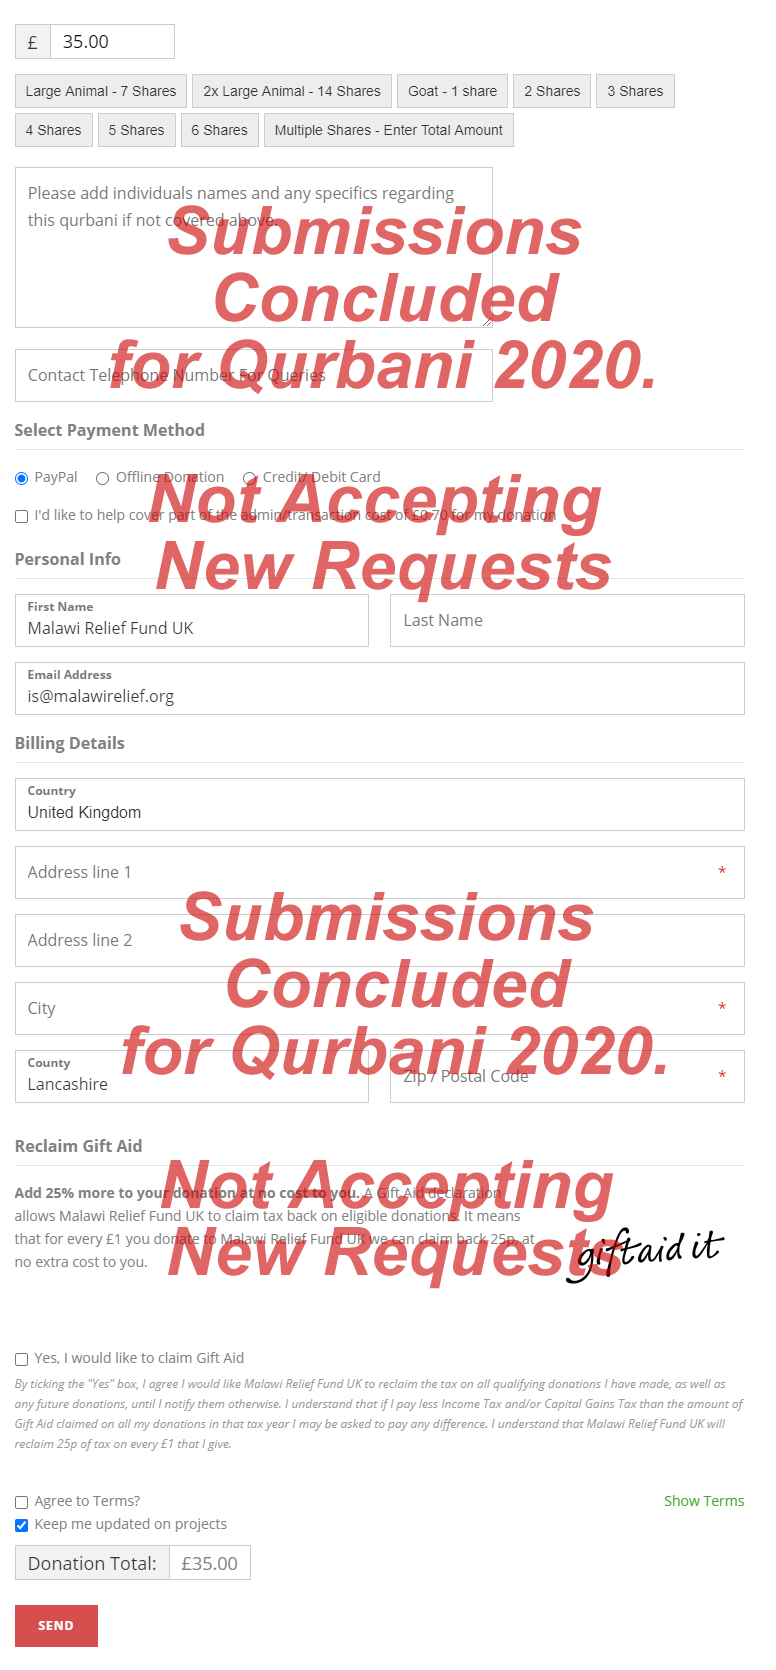 MRF are not accepting any new requests for Qurbani 2020